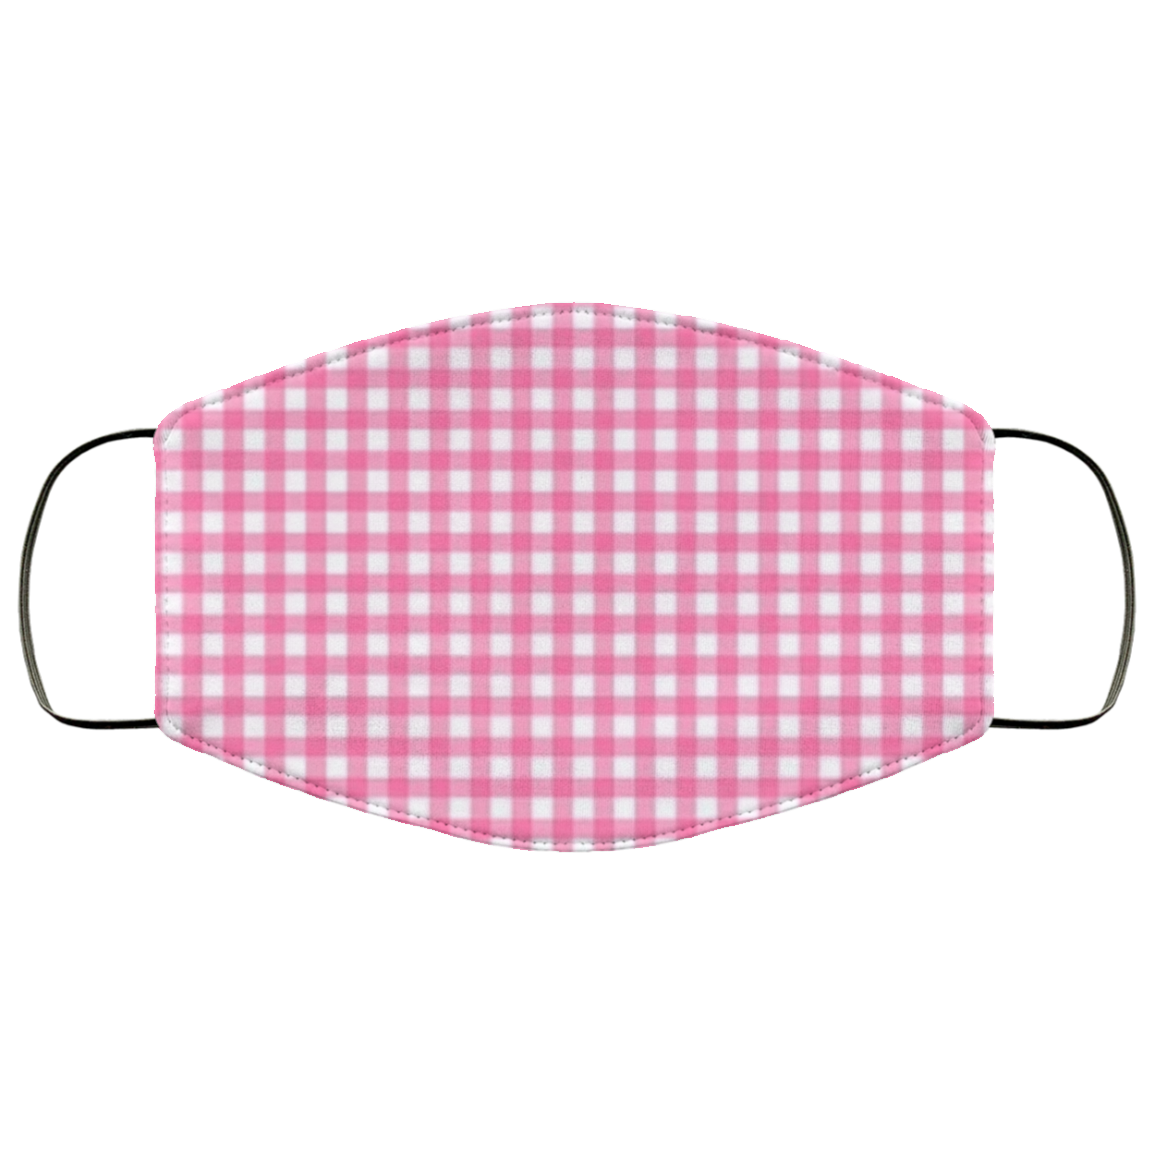 Pink Gingham Face Mask - OMG I Really Want That